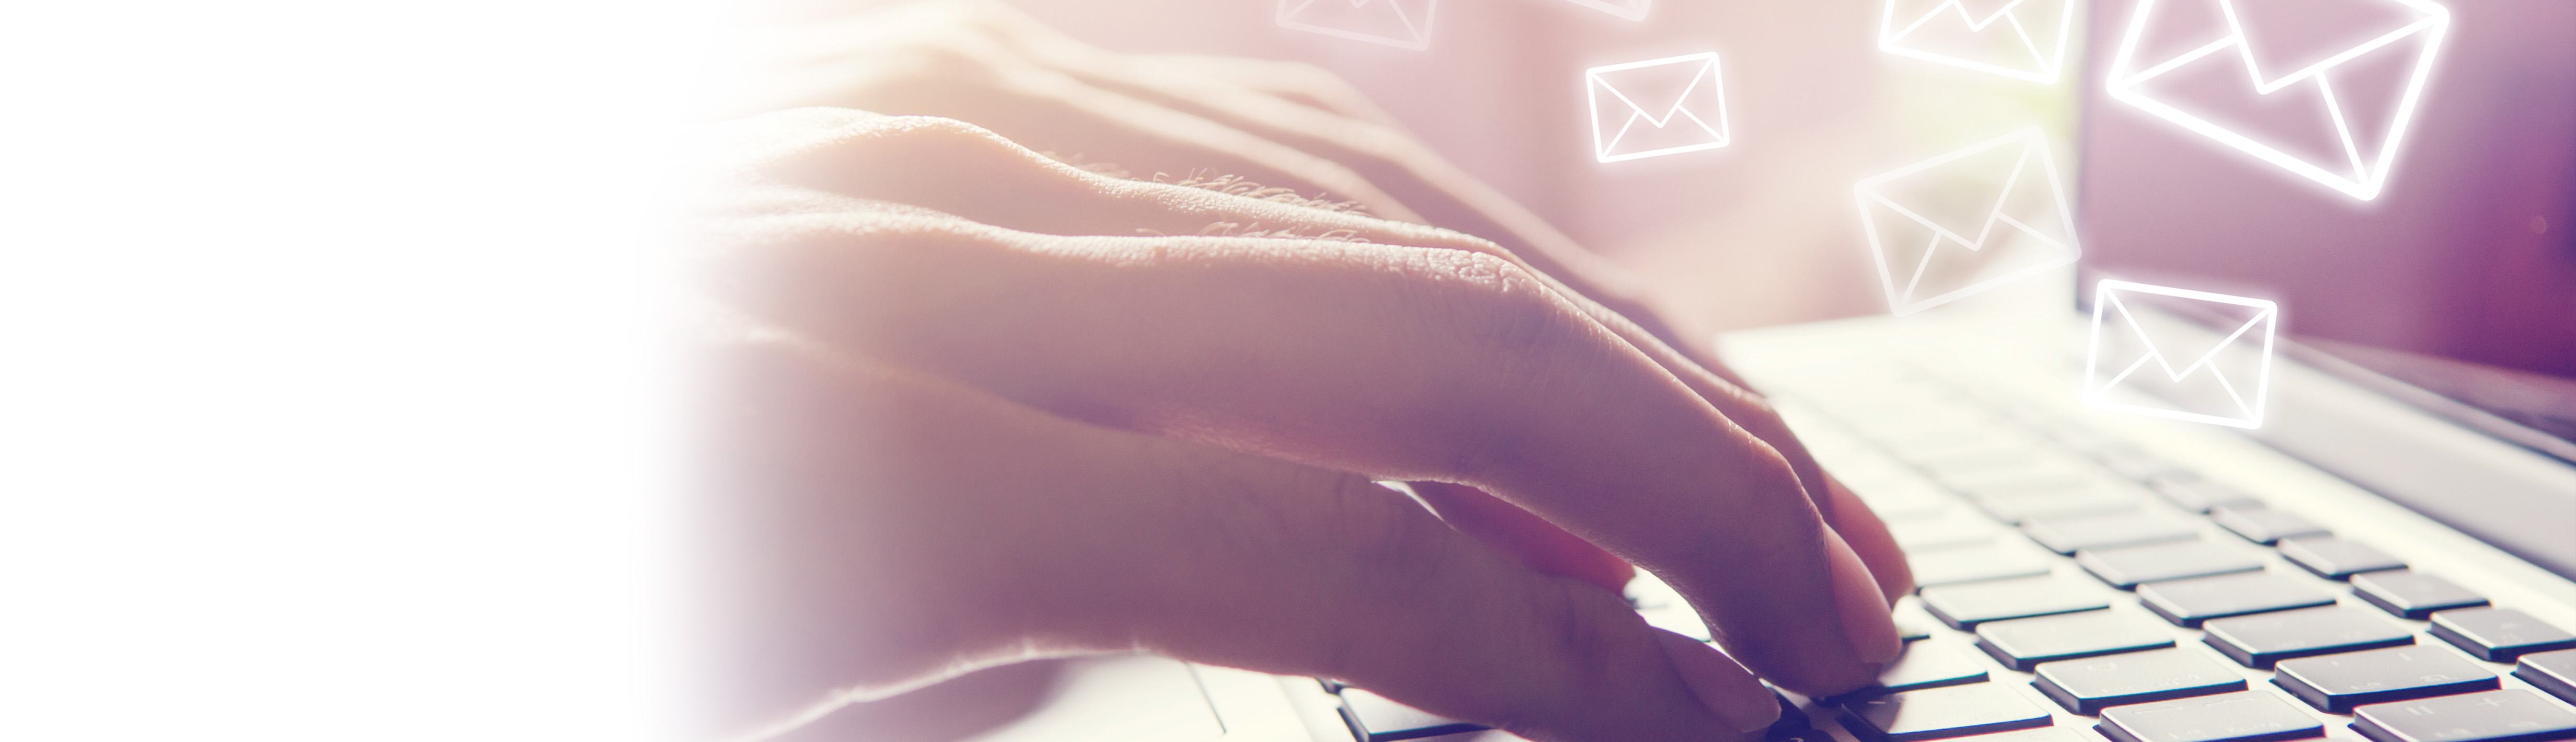 Hands on a keyboard, e-mail icons flying out from the screen.